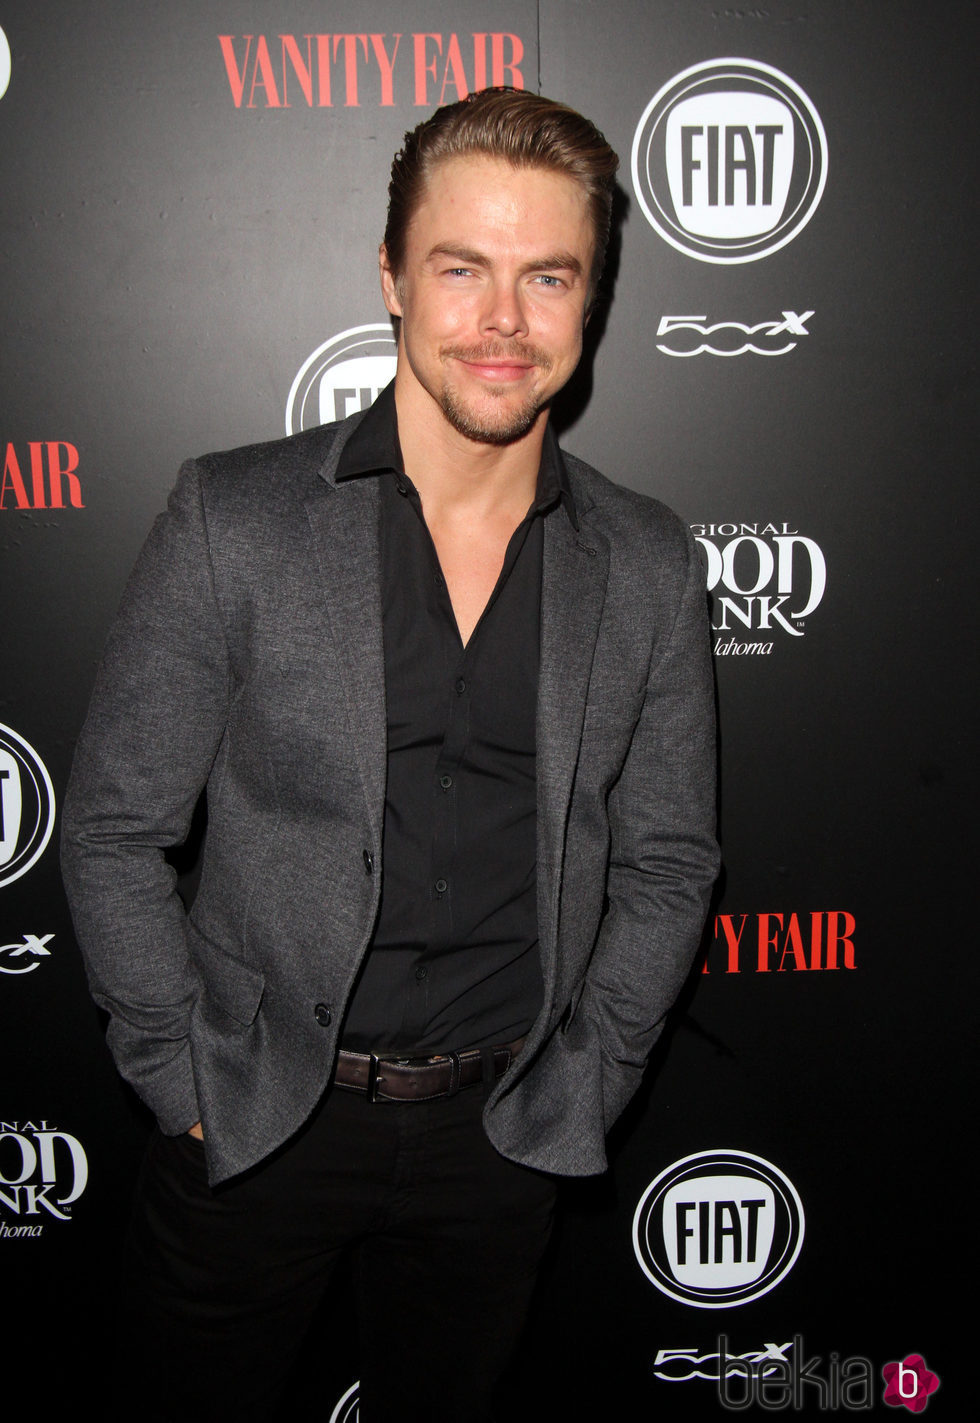 Derek Hough en una fiesta organizada por Vanity Fair en Hollywood